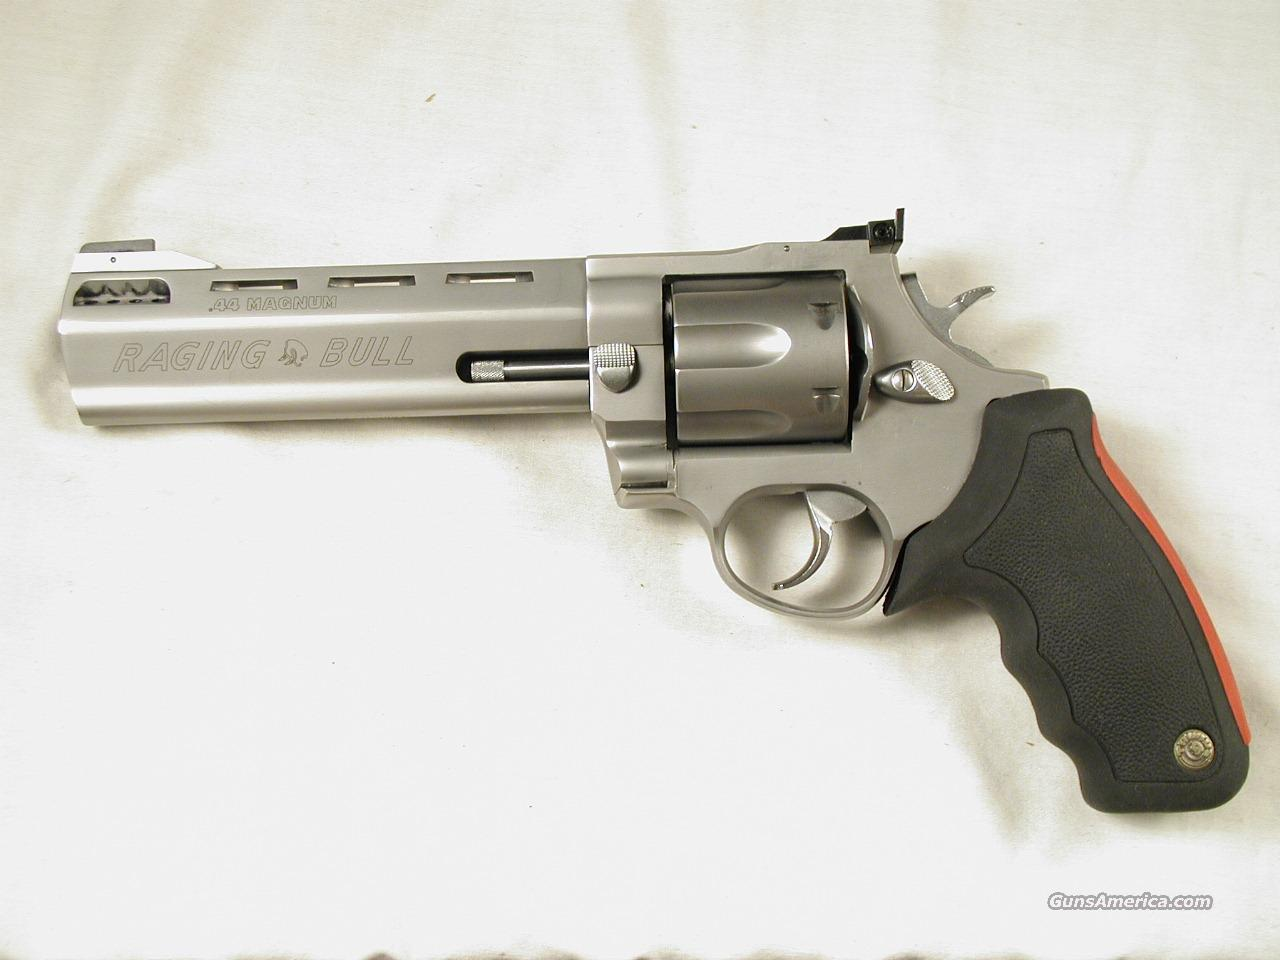 TAURUS RAGING BULL 44 MAGNUM for sale